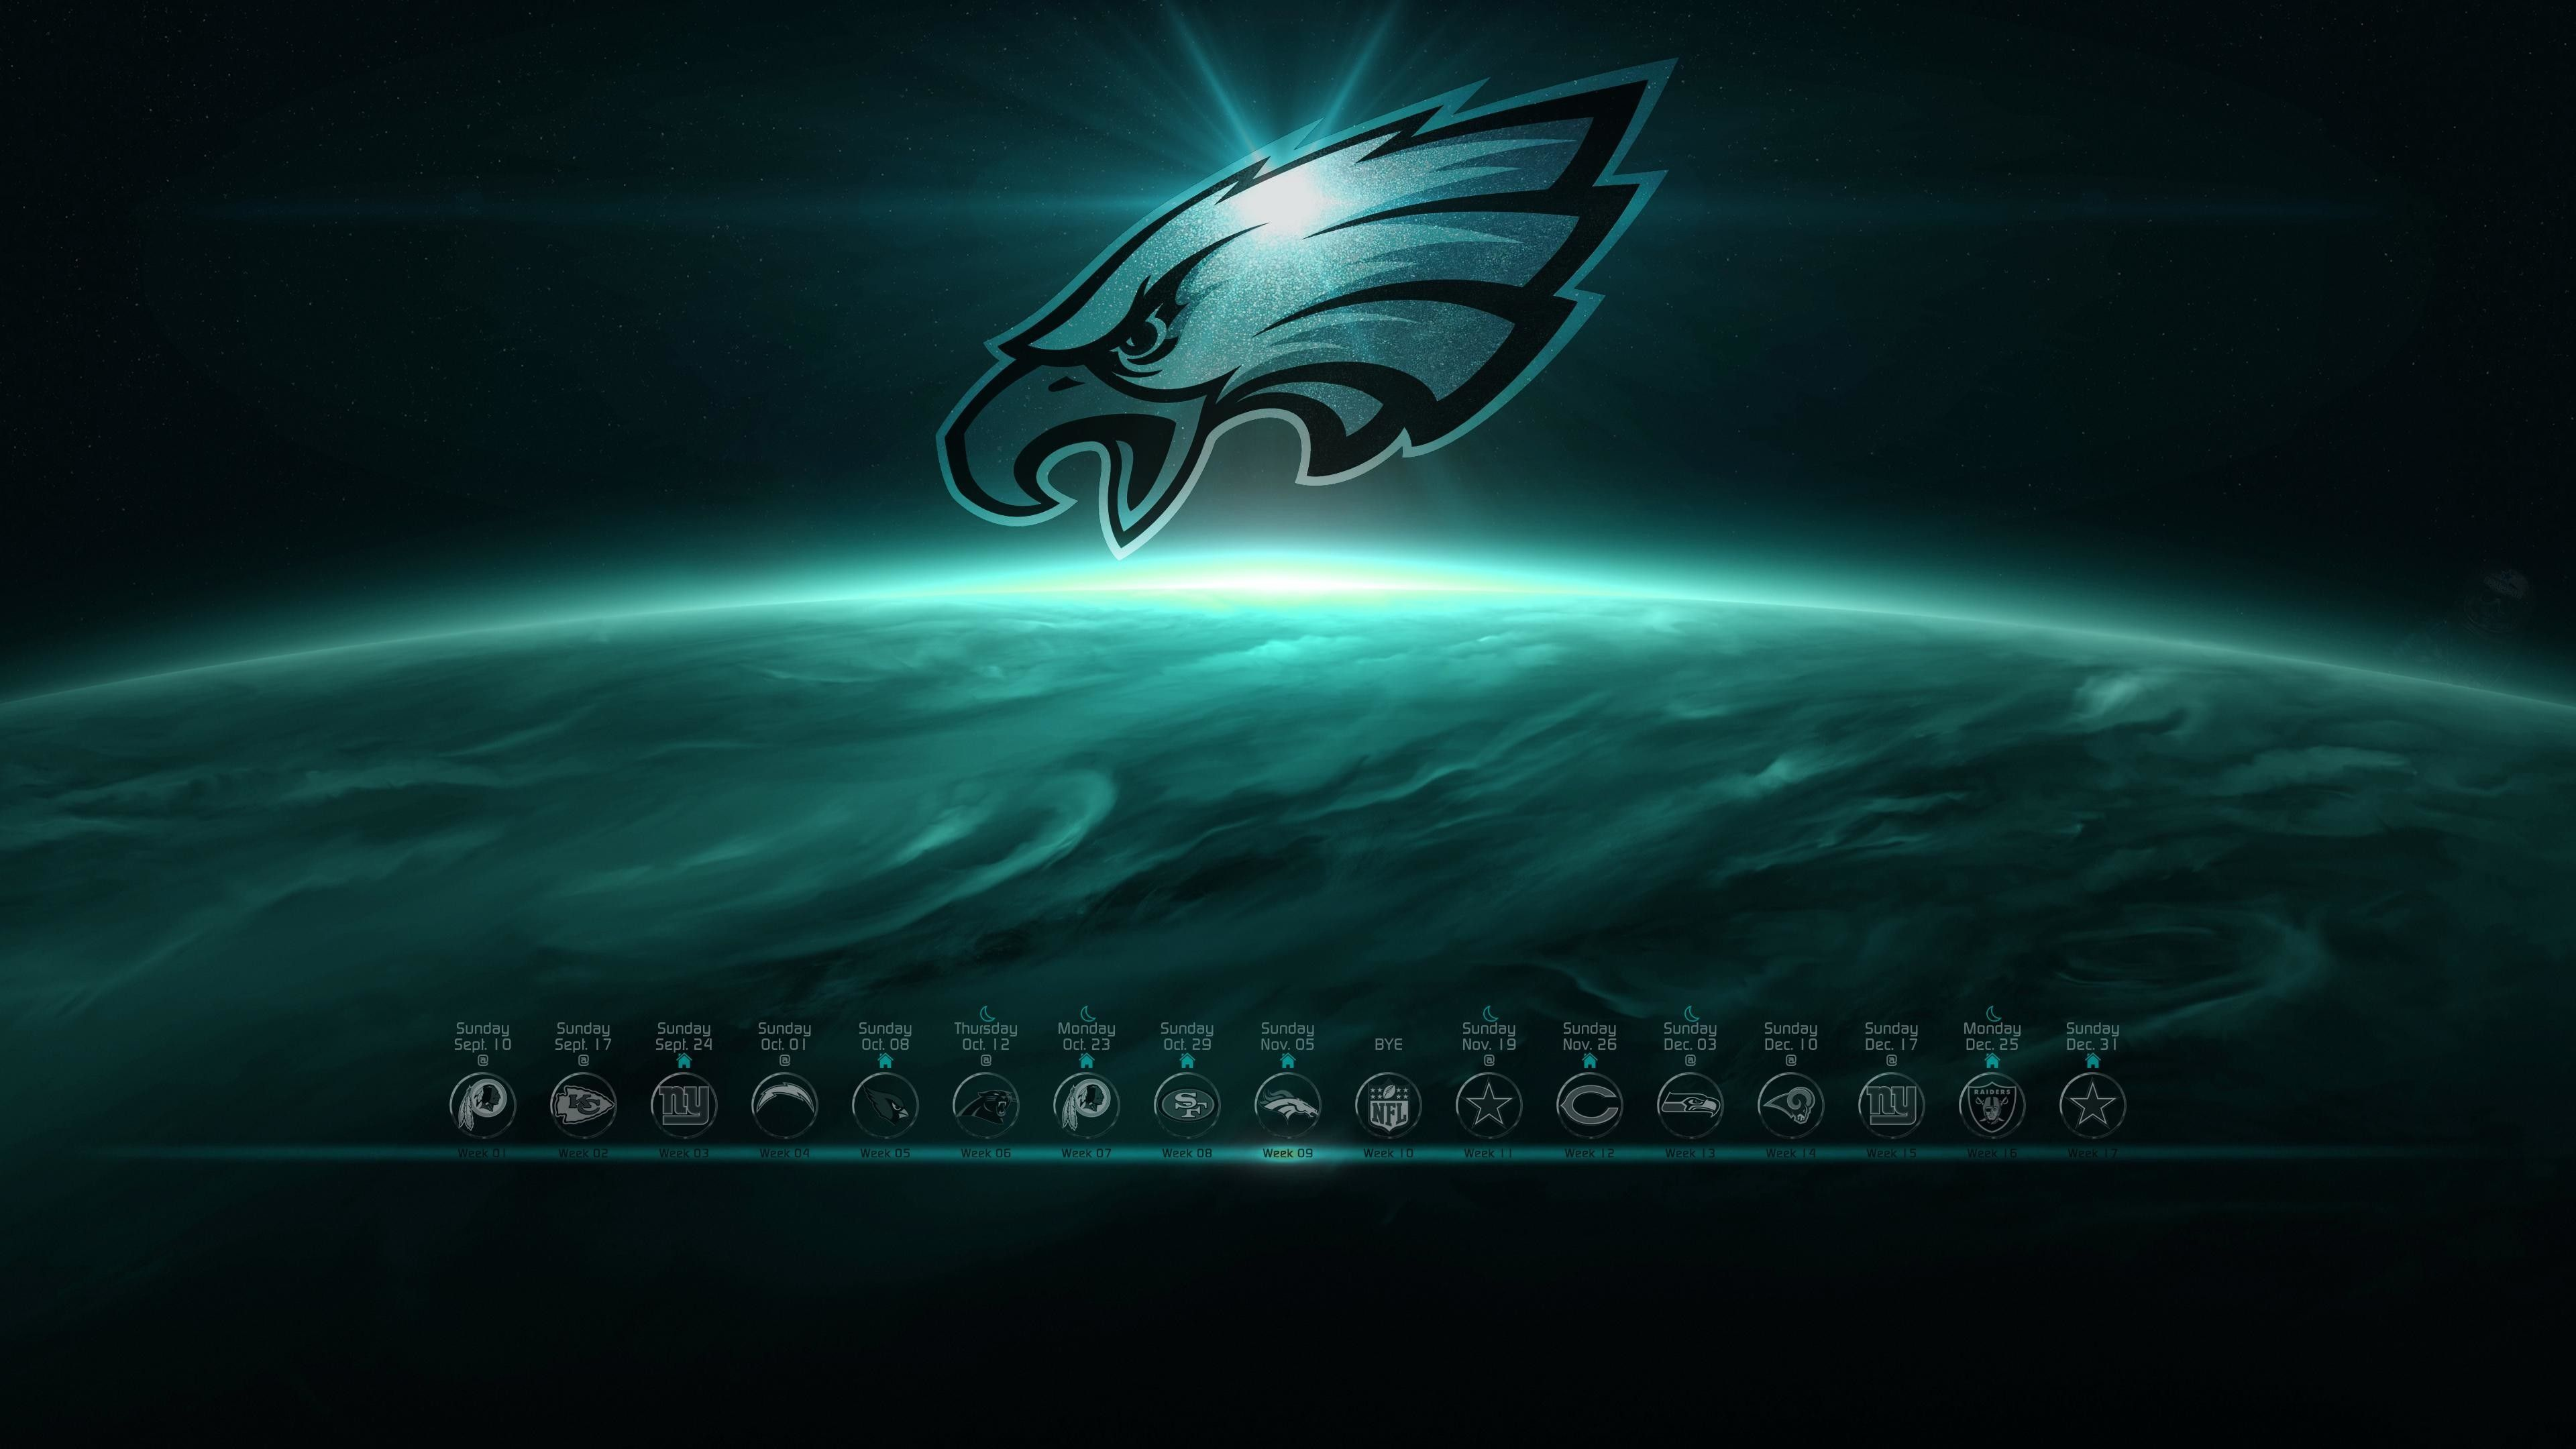 eagles super bowl champions wallpaper